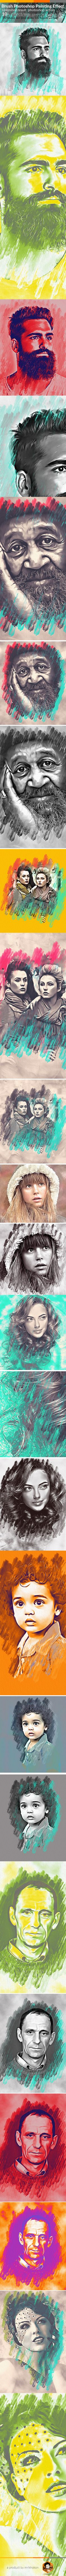 Oil Painting Photoshop Effect. Download here: https://graphicriver.net/item/oil-painting-photoshop-effect/17108342?ref=ksioks